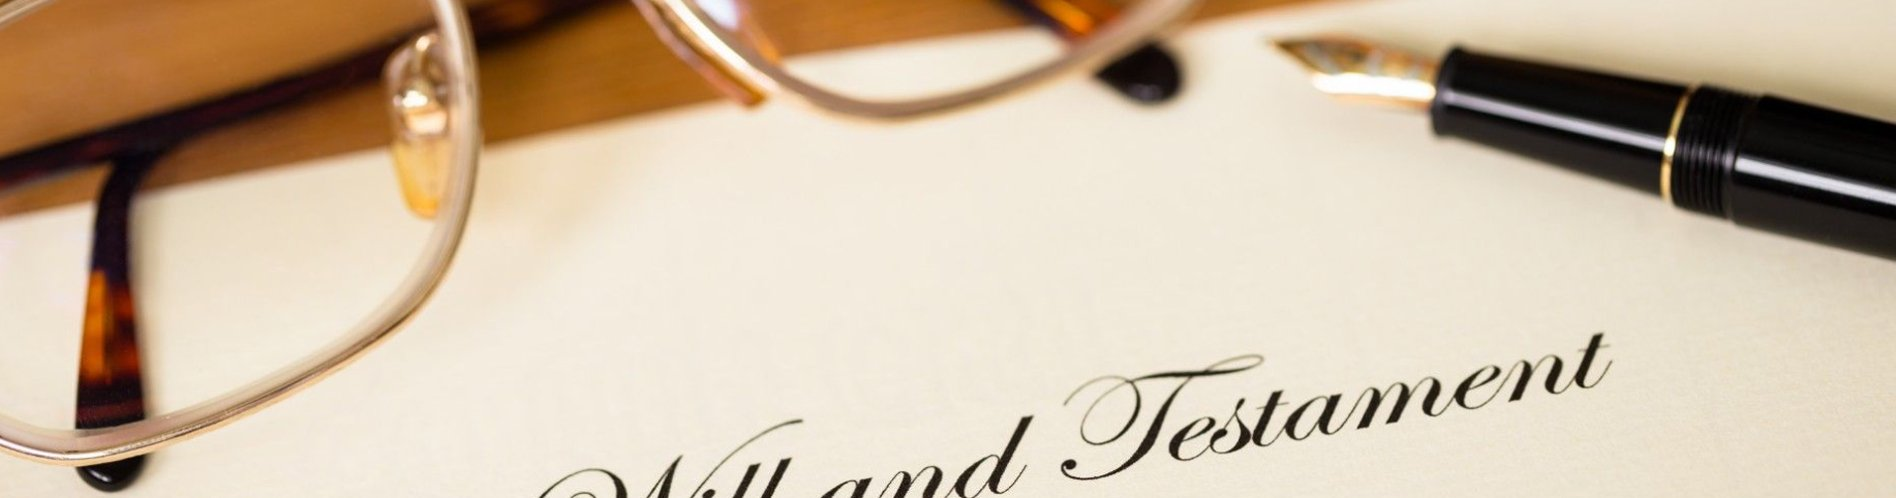 Will and Estate Planning banner